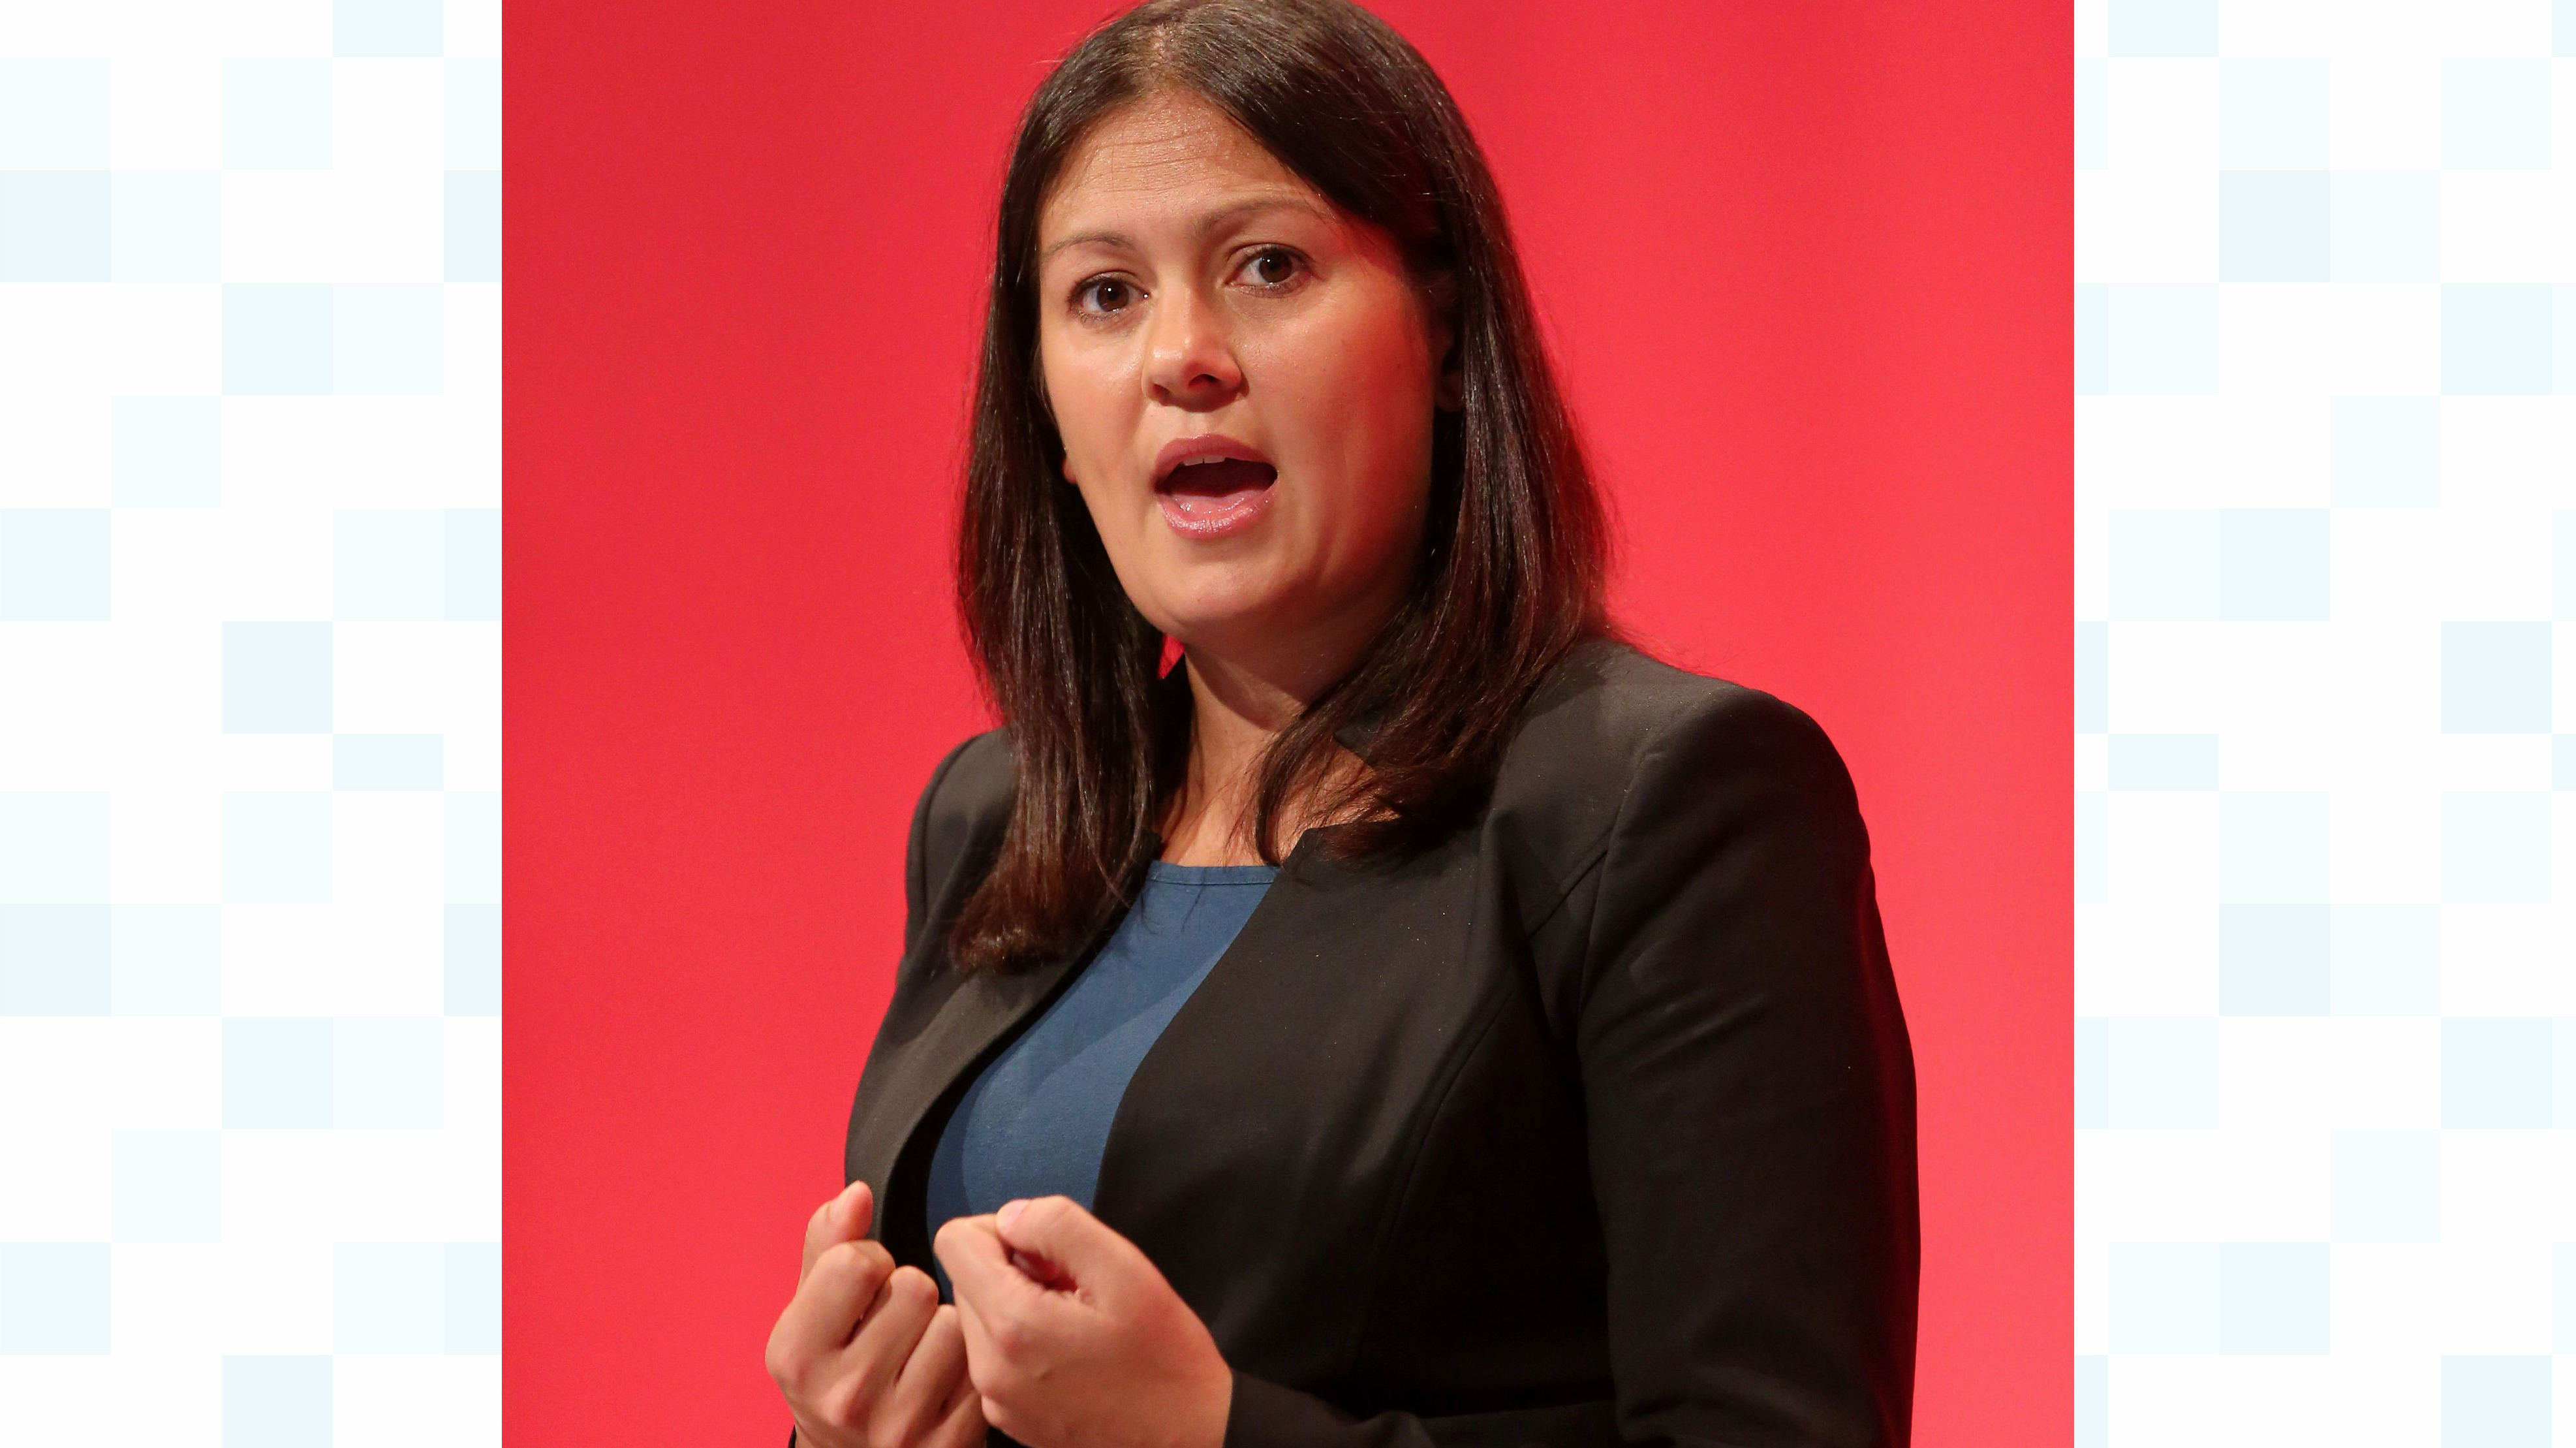 Lisa Nandy Among The Latest To Leave Shadow Cabinet